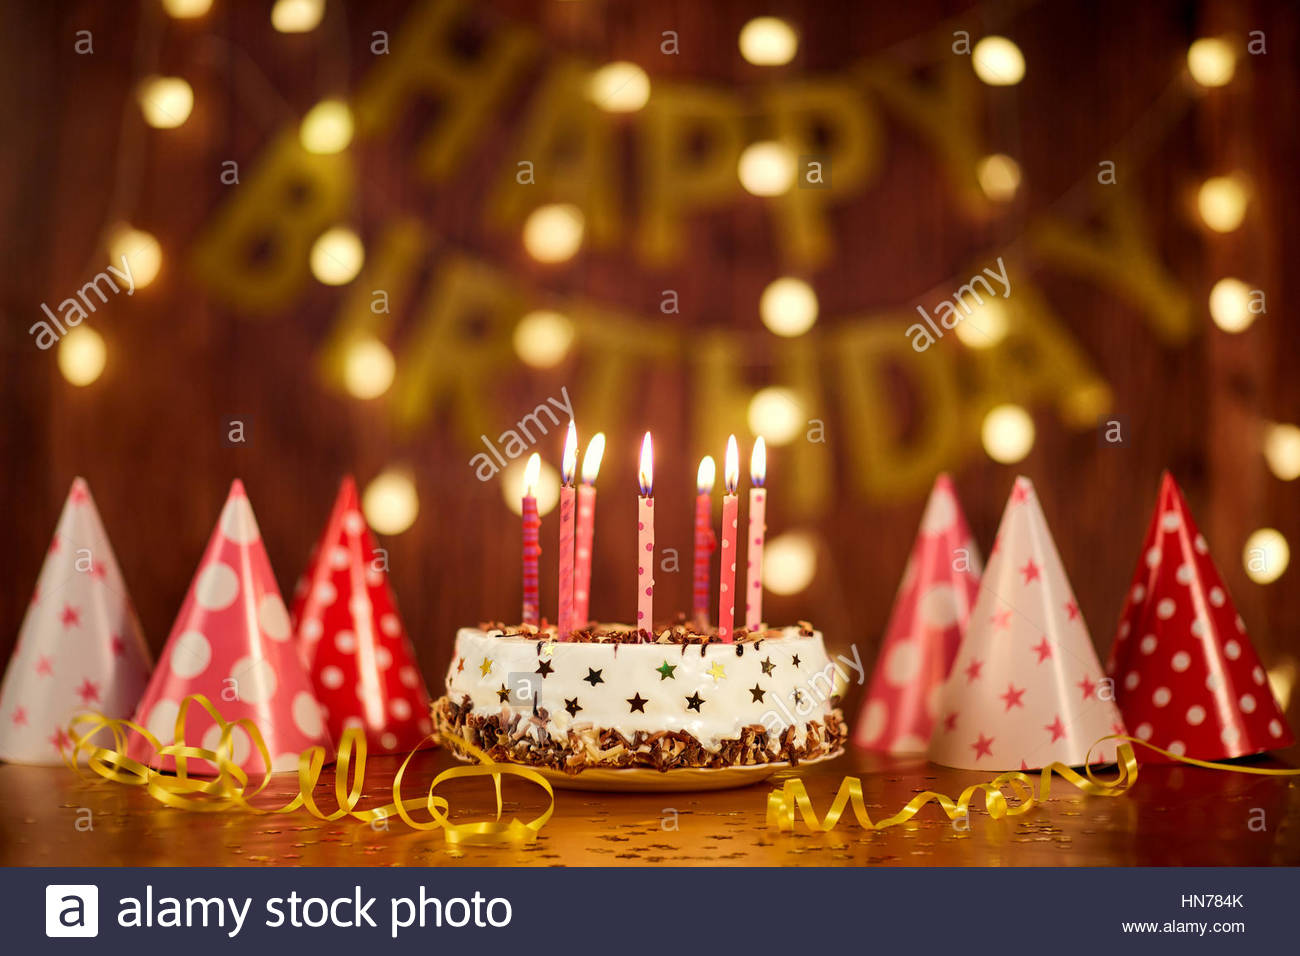 happy birthday cake with candles ; happy-birthday-cake-with-candles-on-the-background-of-garlands-a-HN784K